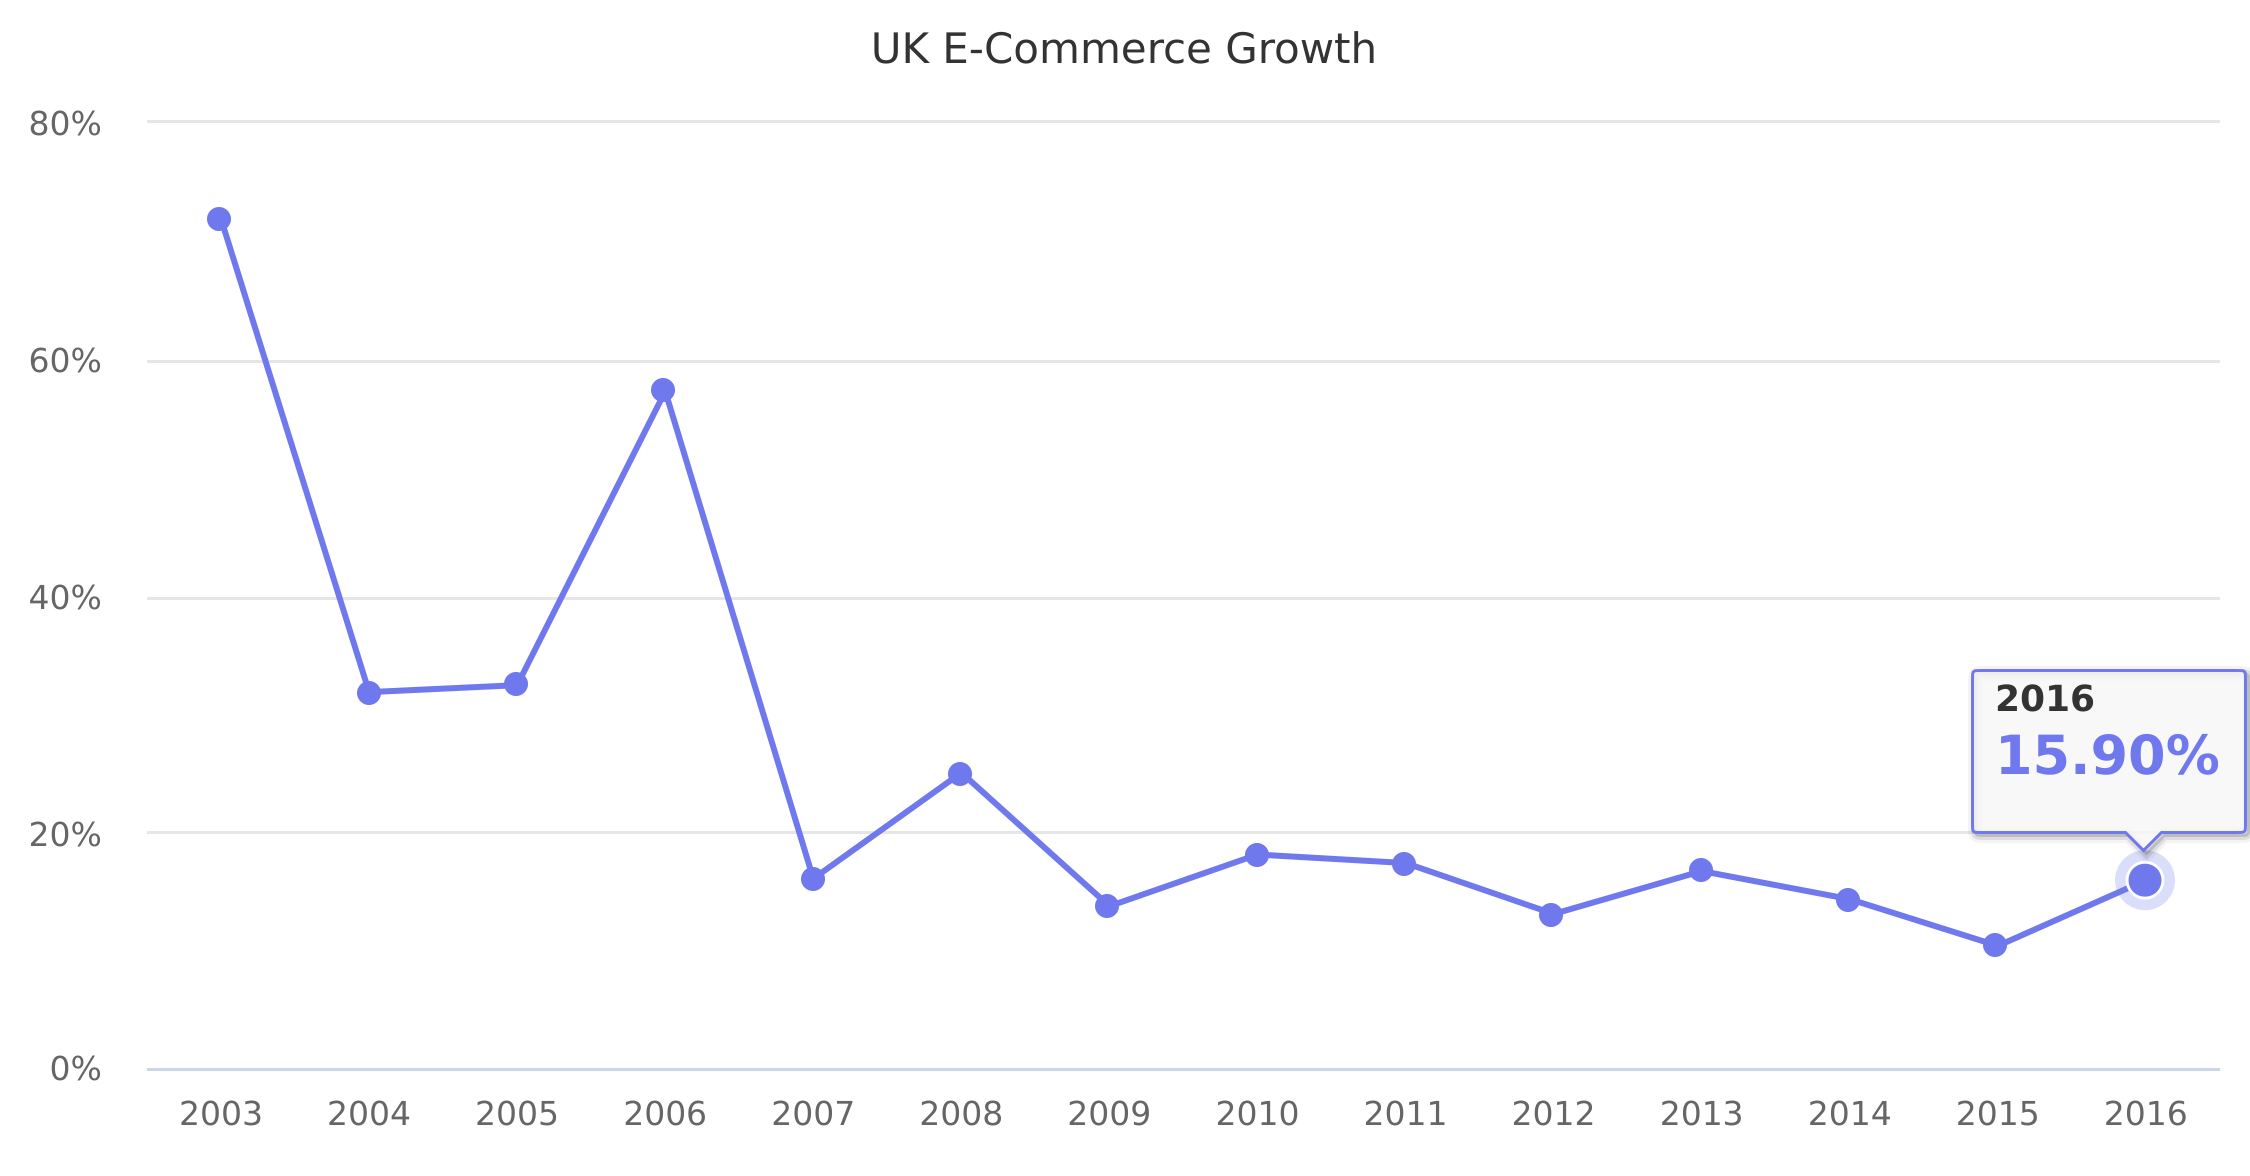 UK E-Commerce Growth